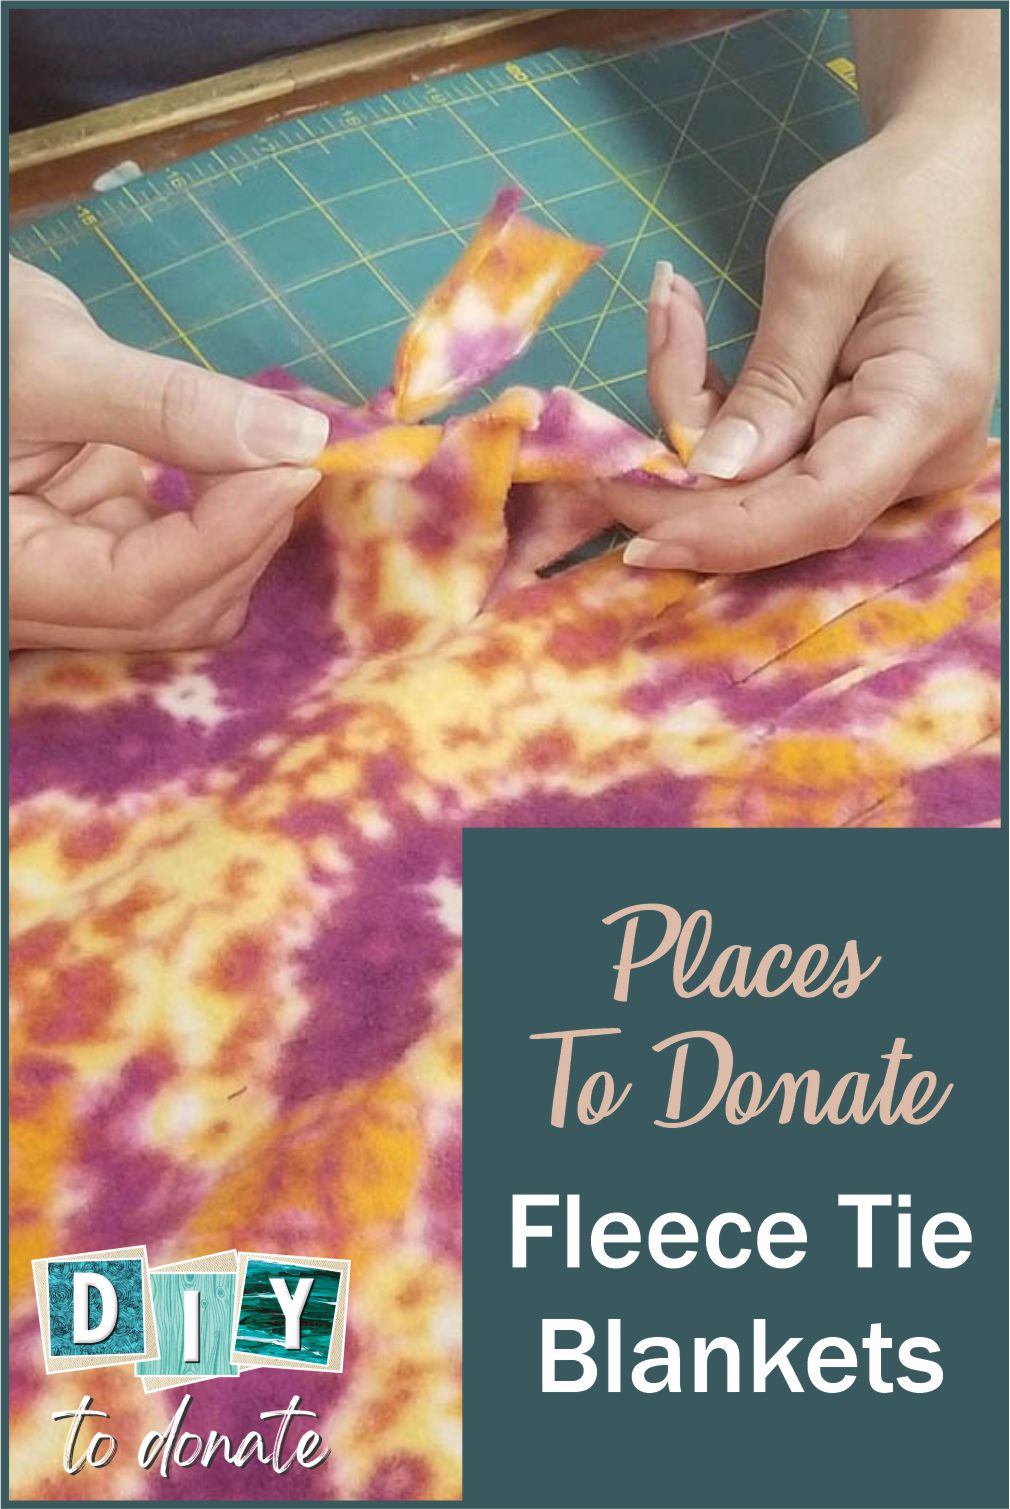 DIY Tie Fleece Blankets and Where To Donate Your group can make a donate fleece tie blankets as a community service project. It's easy enough for kids as young as 7 years old to participate. #diytodonate #fleeceblankets #donateblankets #tieblankets #communityservice #donate